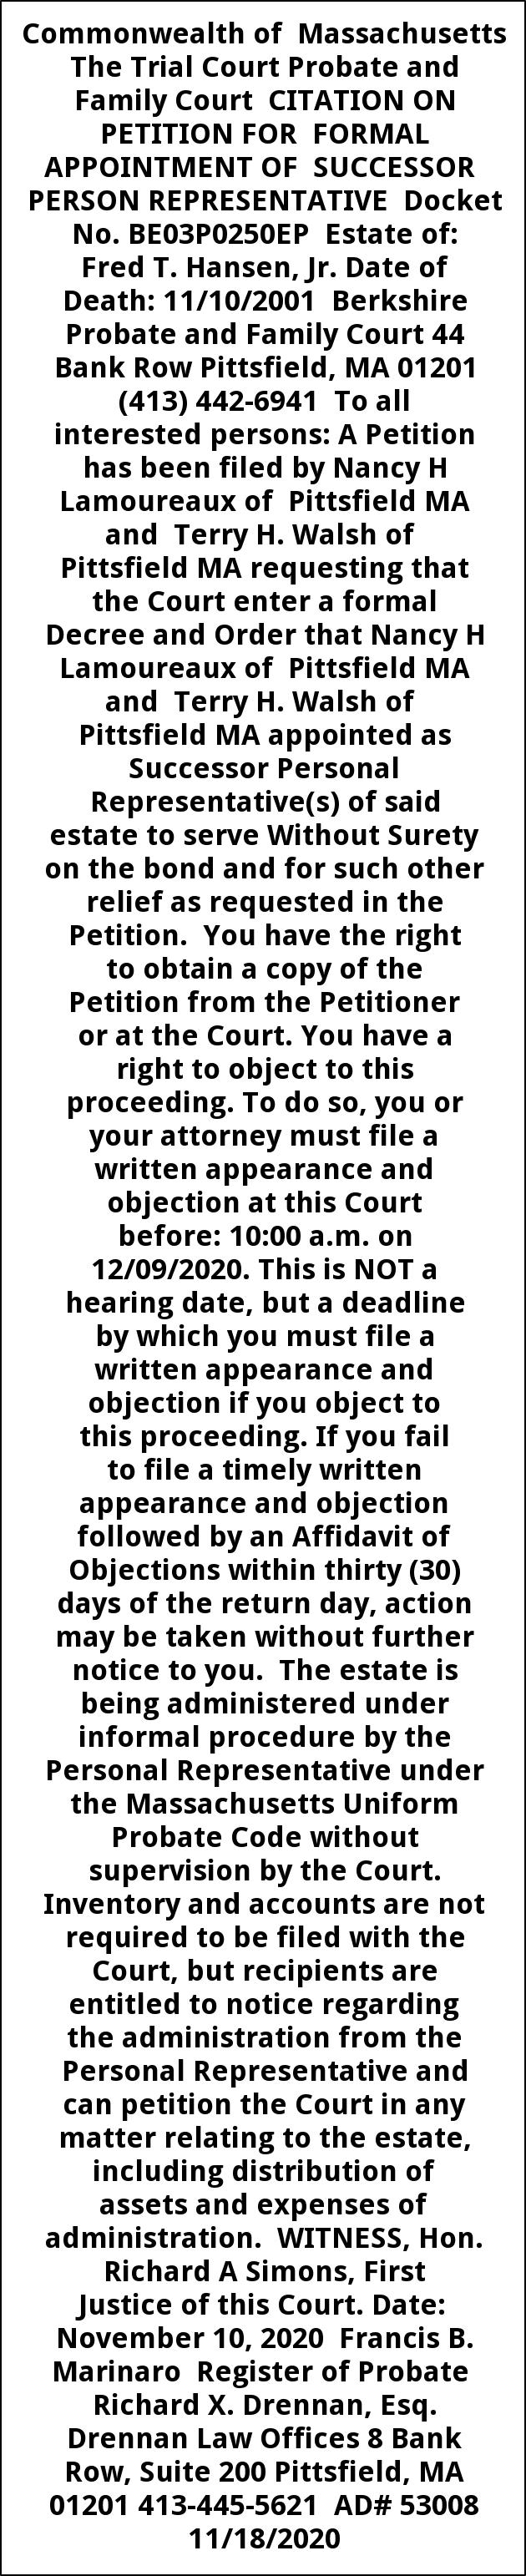 Citation On Petition for Formal Apointment Of Successor